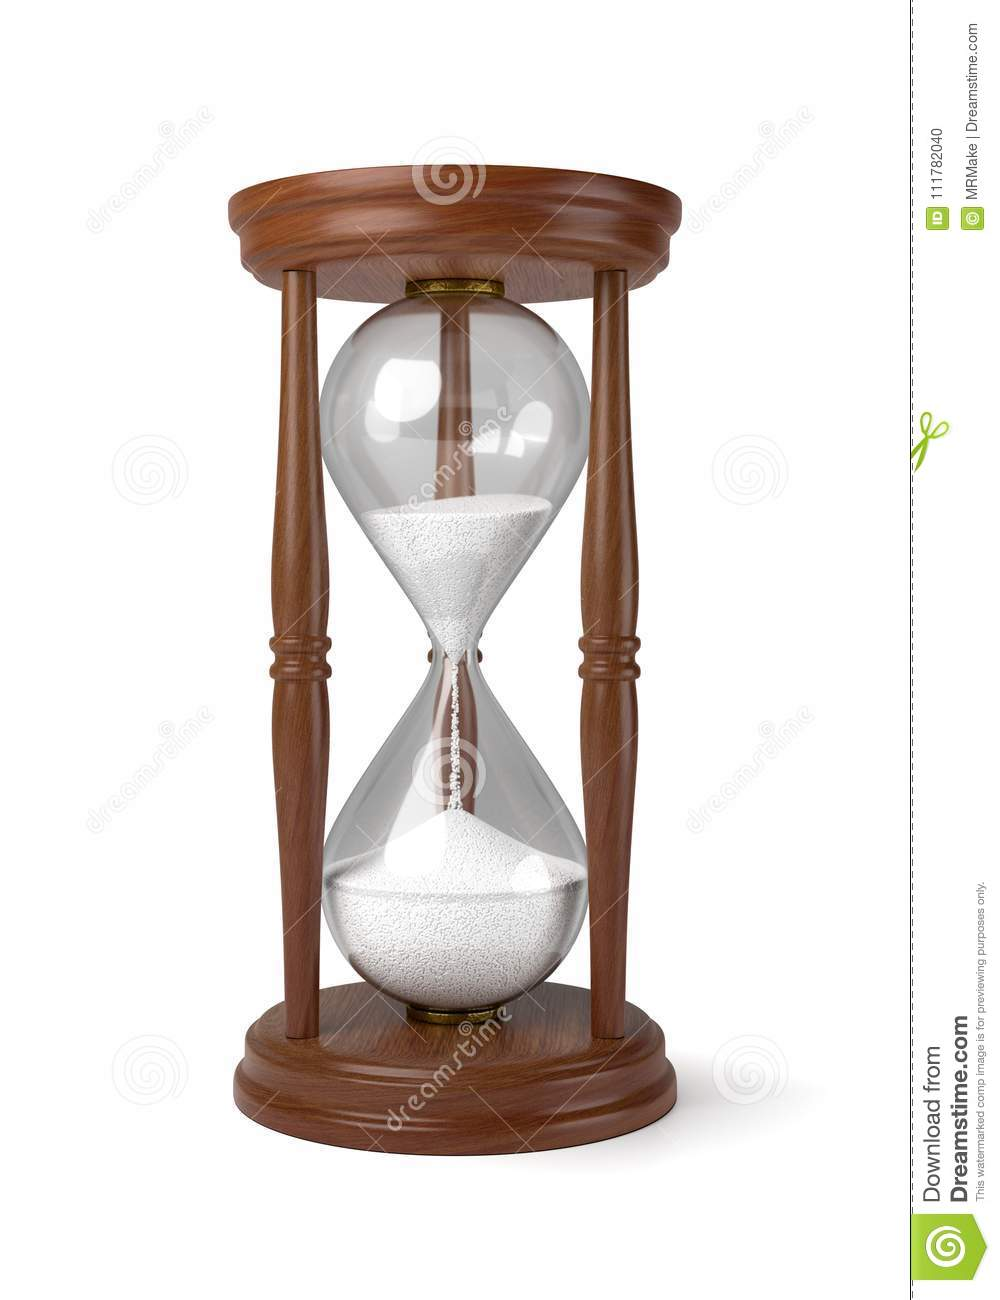 Wooden Hourglass on White Background